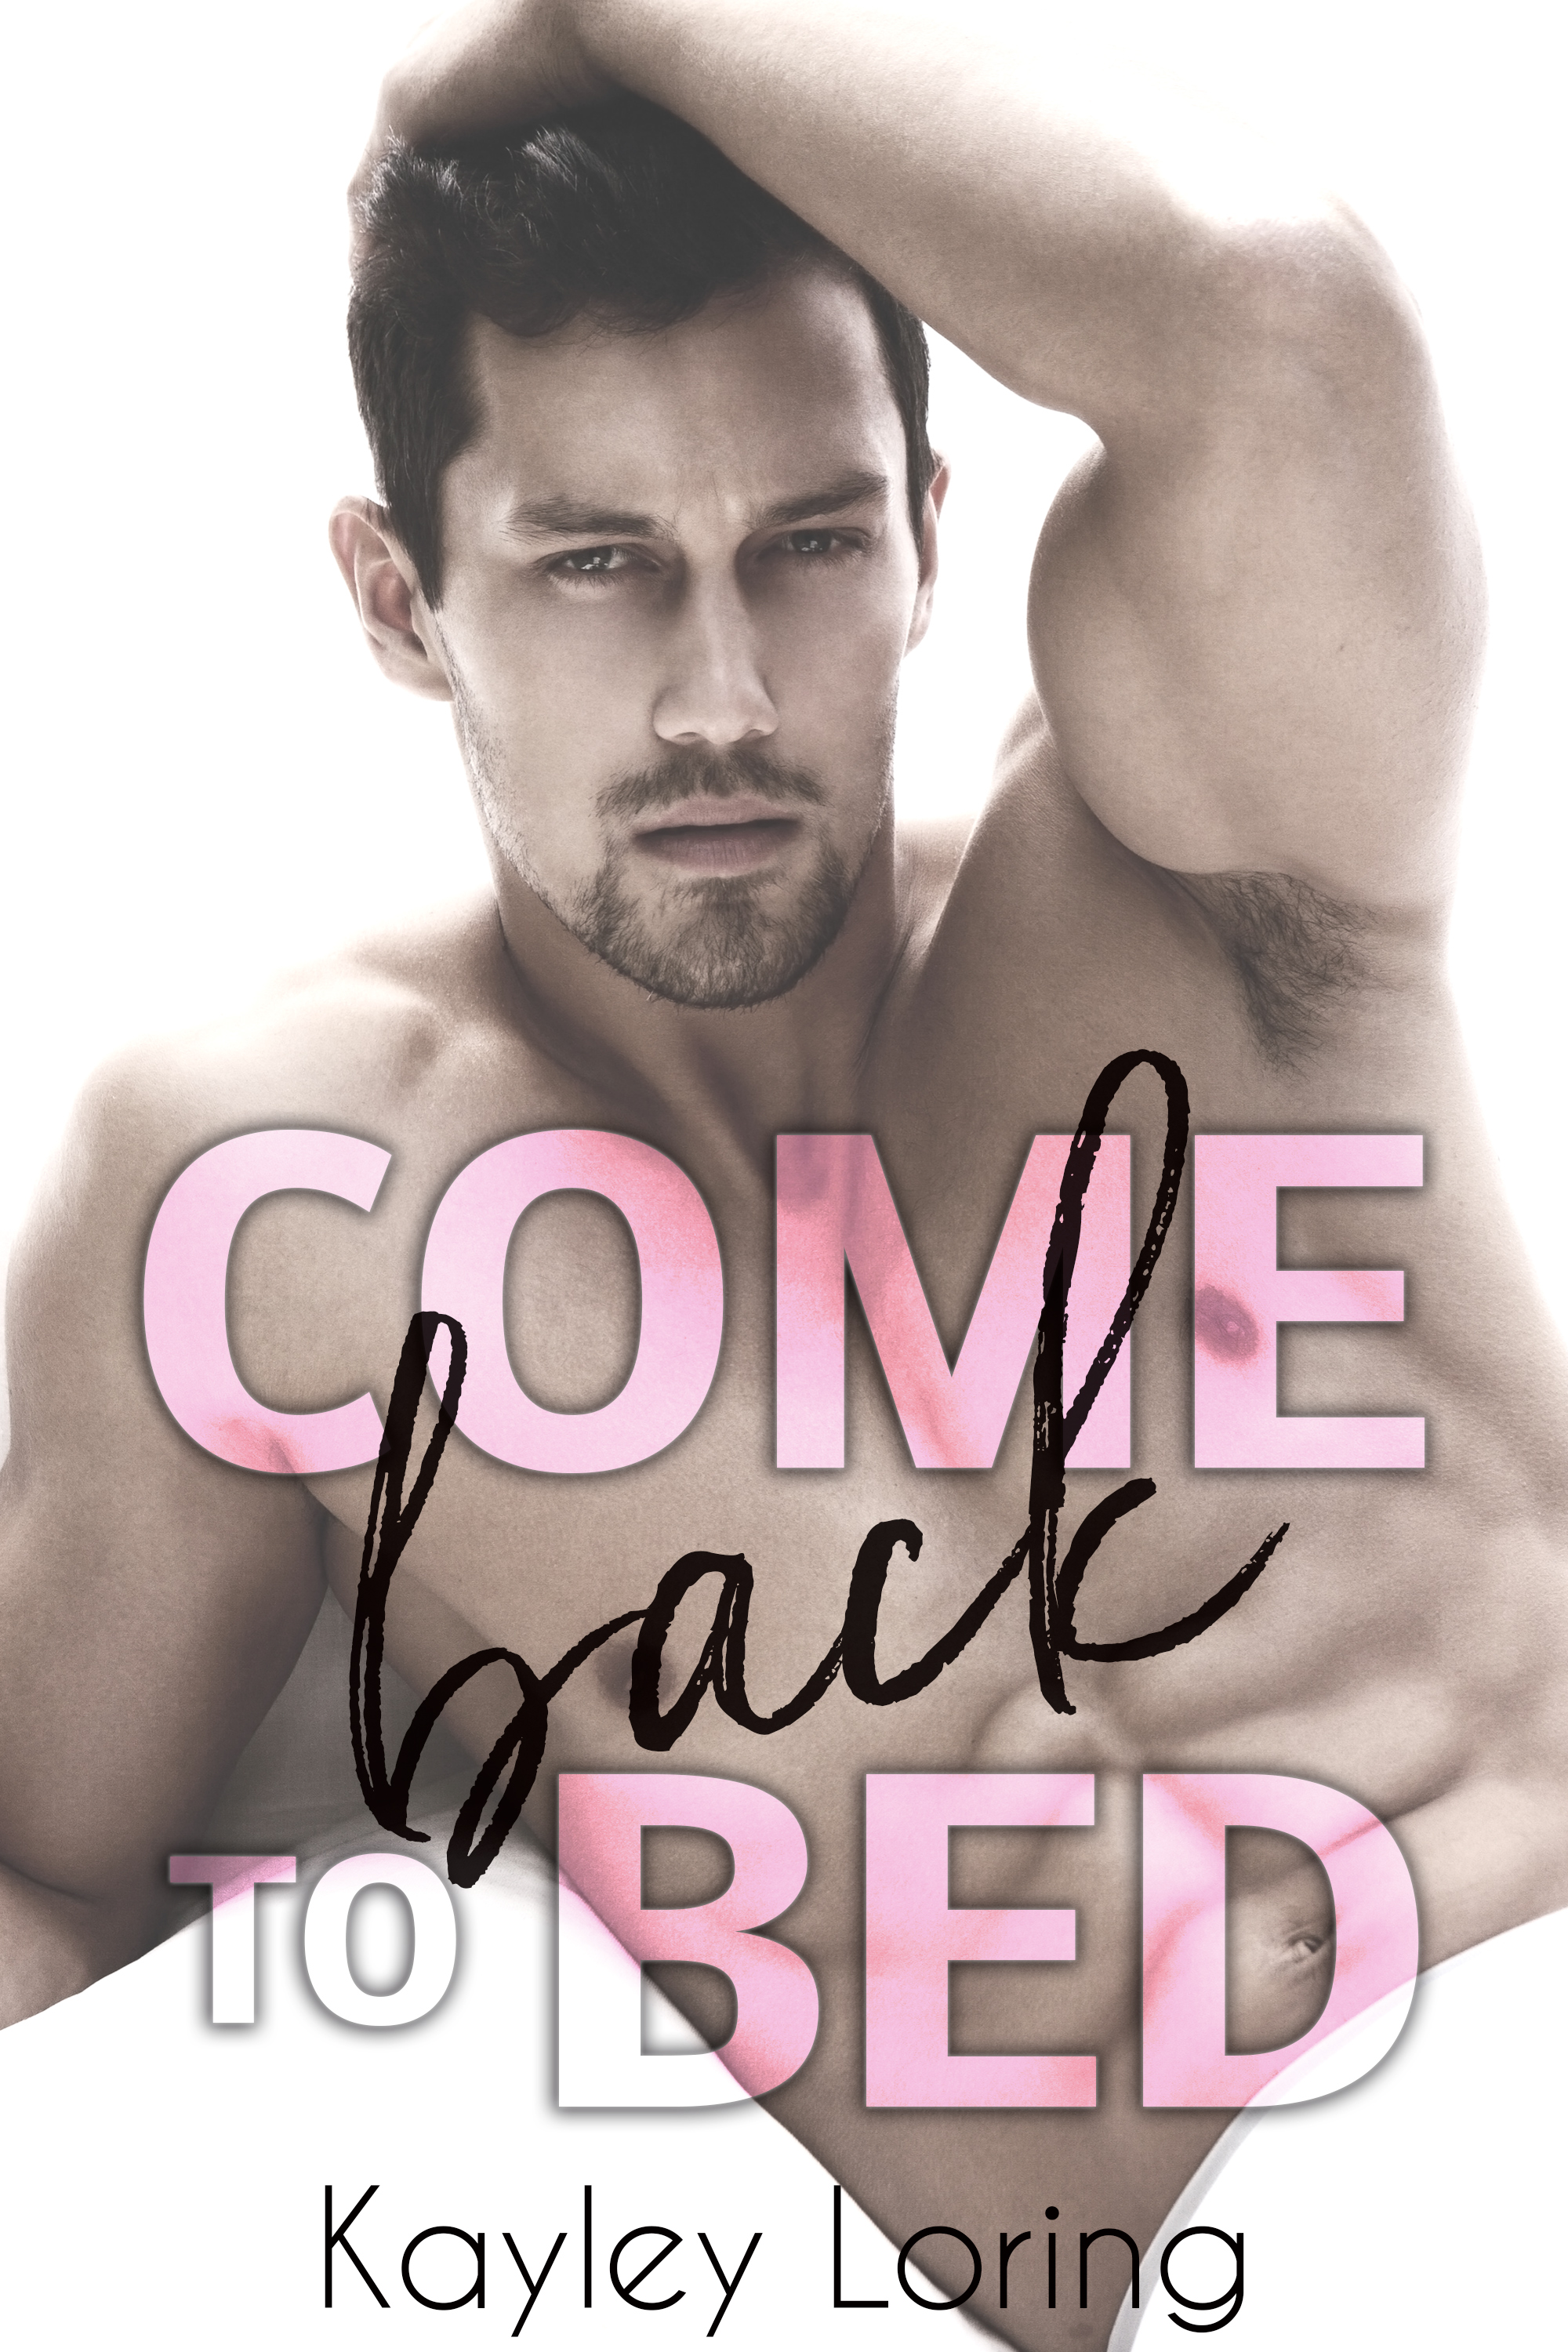 COME BACK TO BED Kayley Loring kindle cover